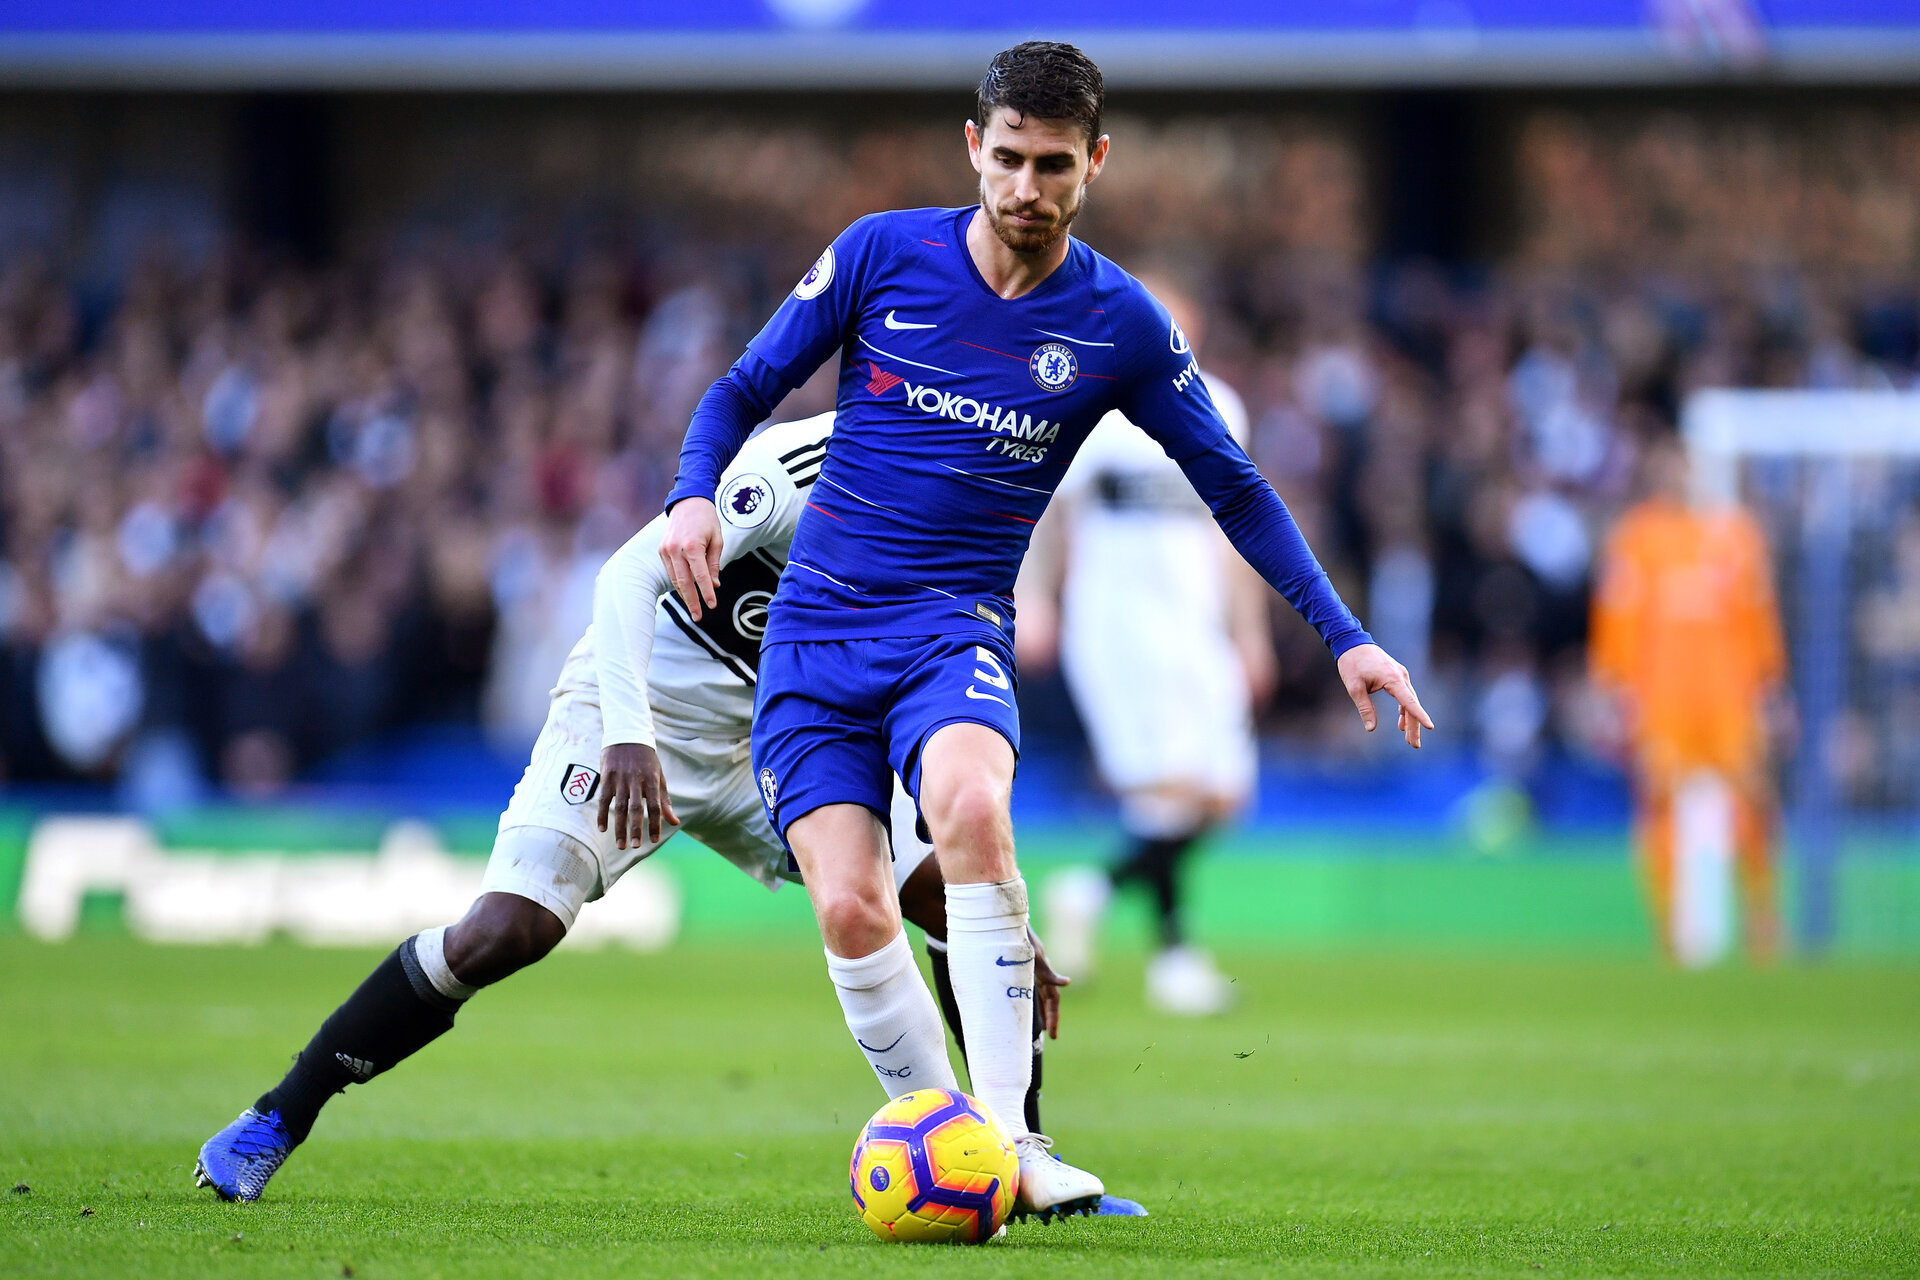 LONDON, ENGLAND - DECEMBER 02:  Jorginho of Chelsea during the Premier League match between Chelsea FC and Fulham FC at Stamford Bridge on December 1, 2018 in London, United Kingdom. (Photo by Justin Setterfield/Getty Images)